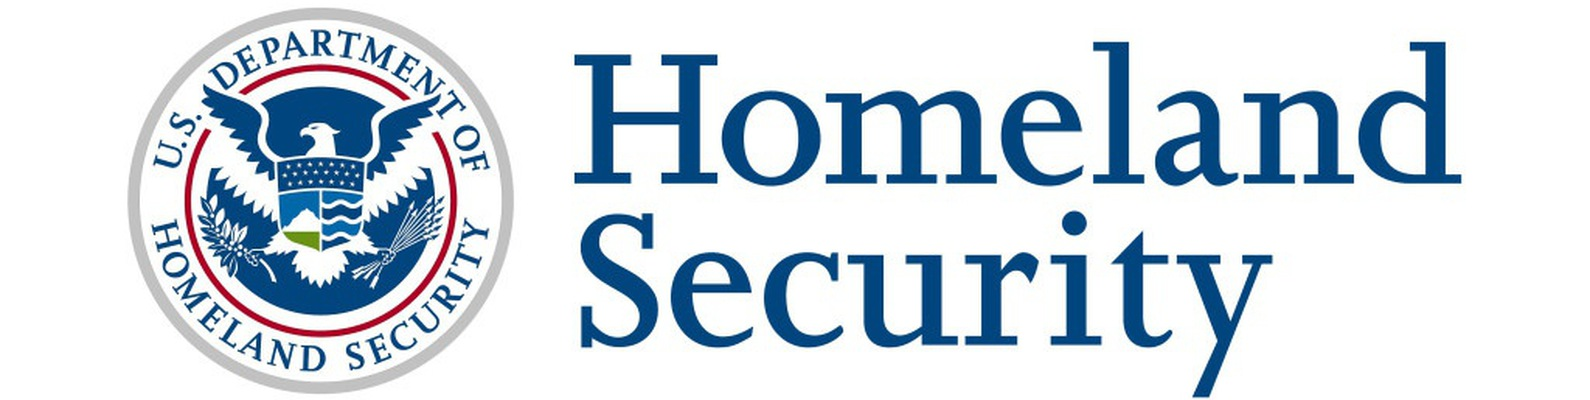 department of homeland security essay Earning an online master's in school counseling allows students to complete their program requirements without disrupting their current professional obligations the department of homeland security criminology essay category: finance essay examples  the financial and operational.